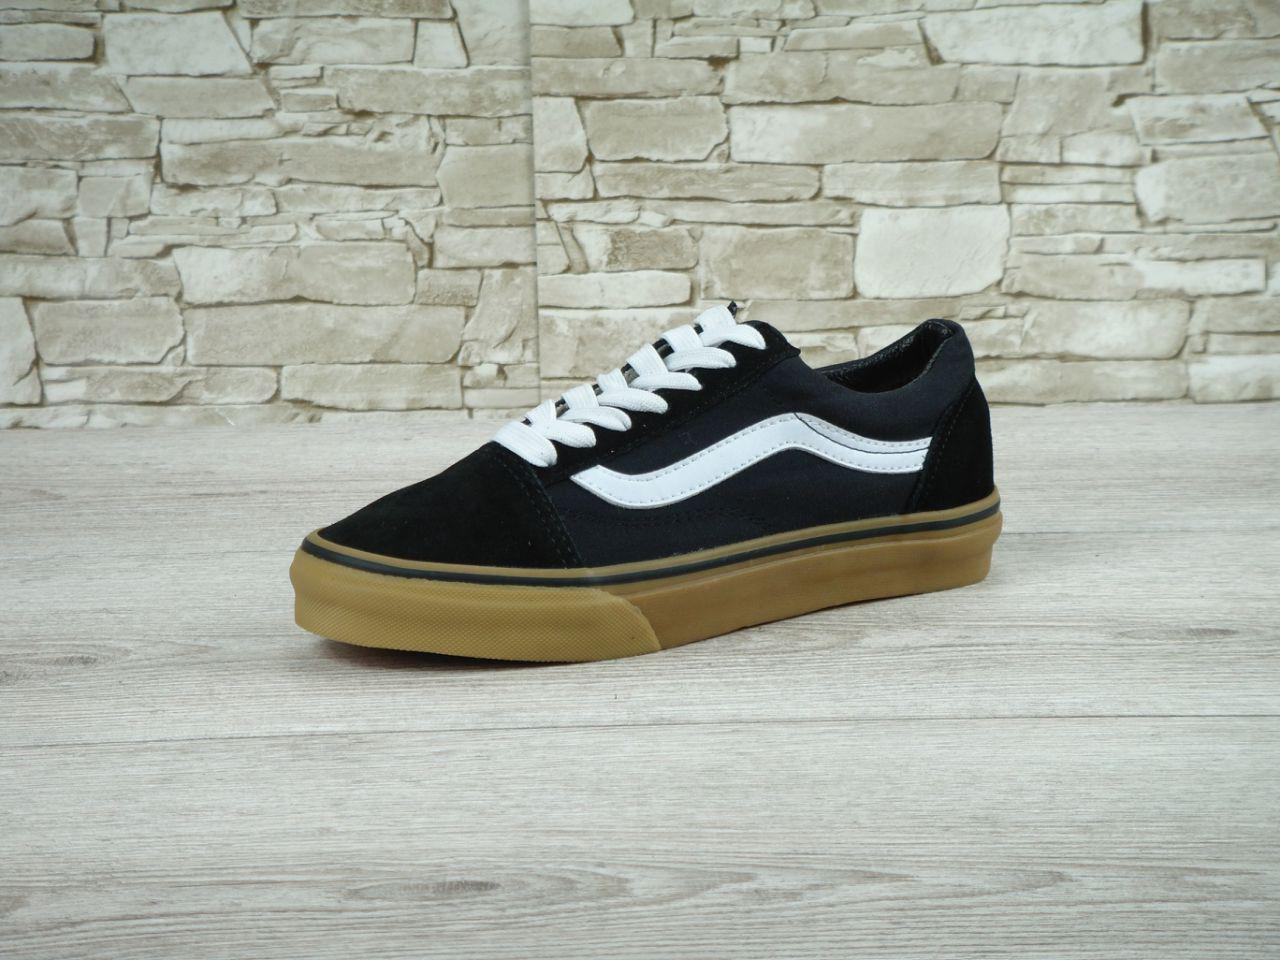 Женские кеды Vans Old Skool, Копия